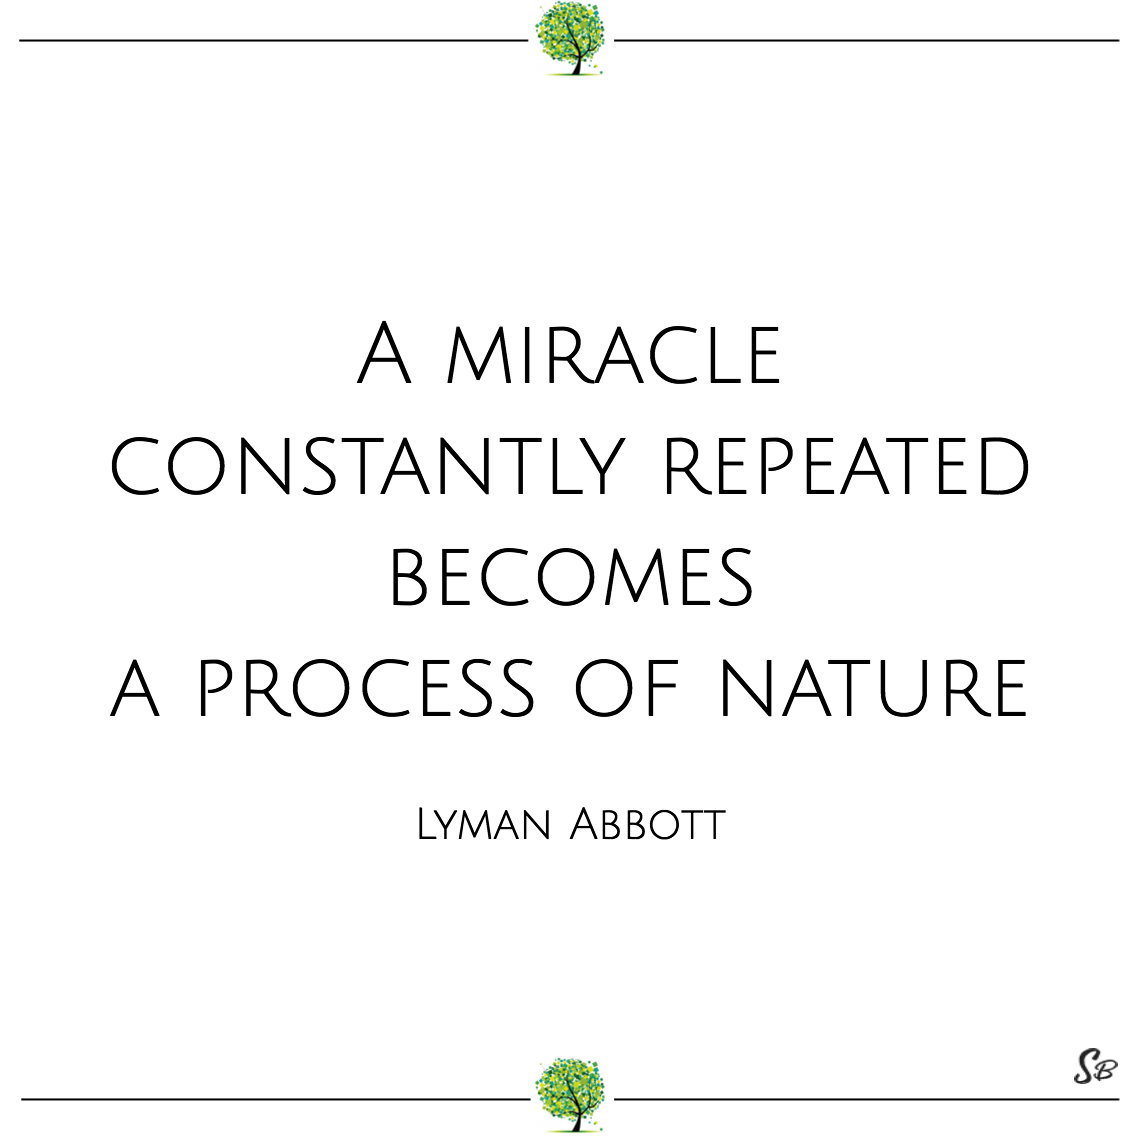 A miracle constantly repeated becomes a process of nature lyman abbott